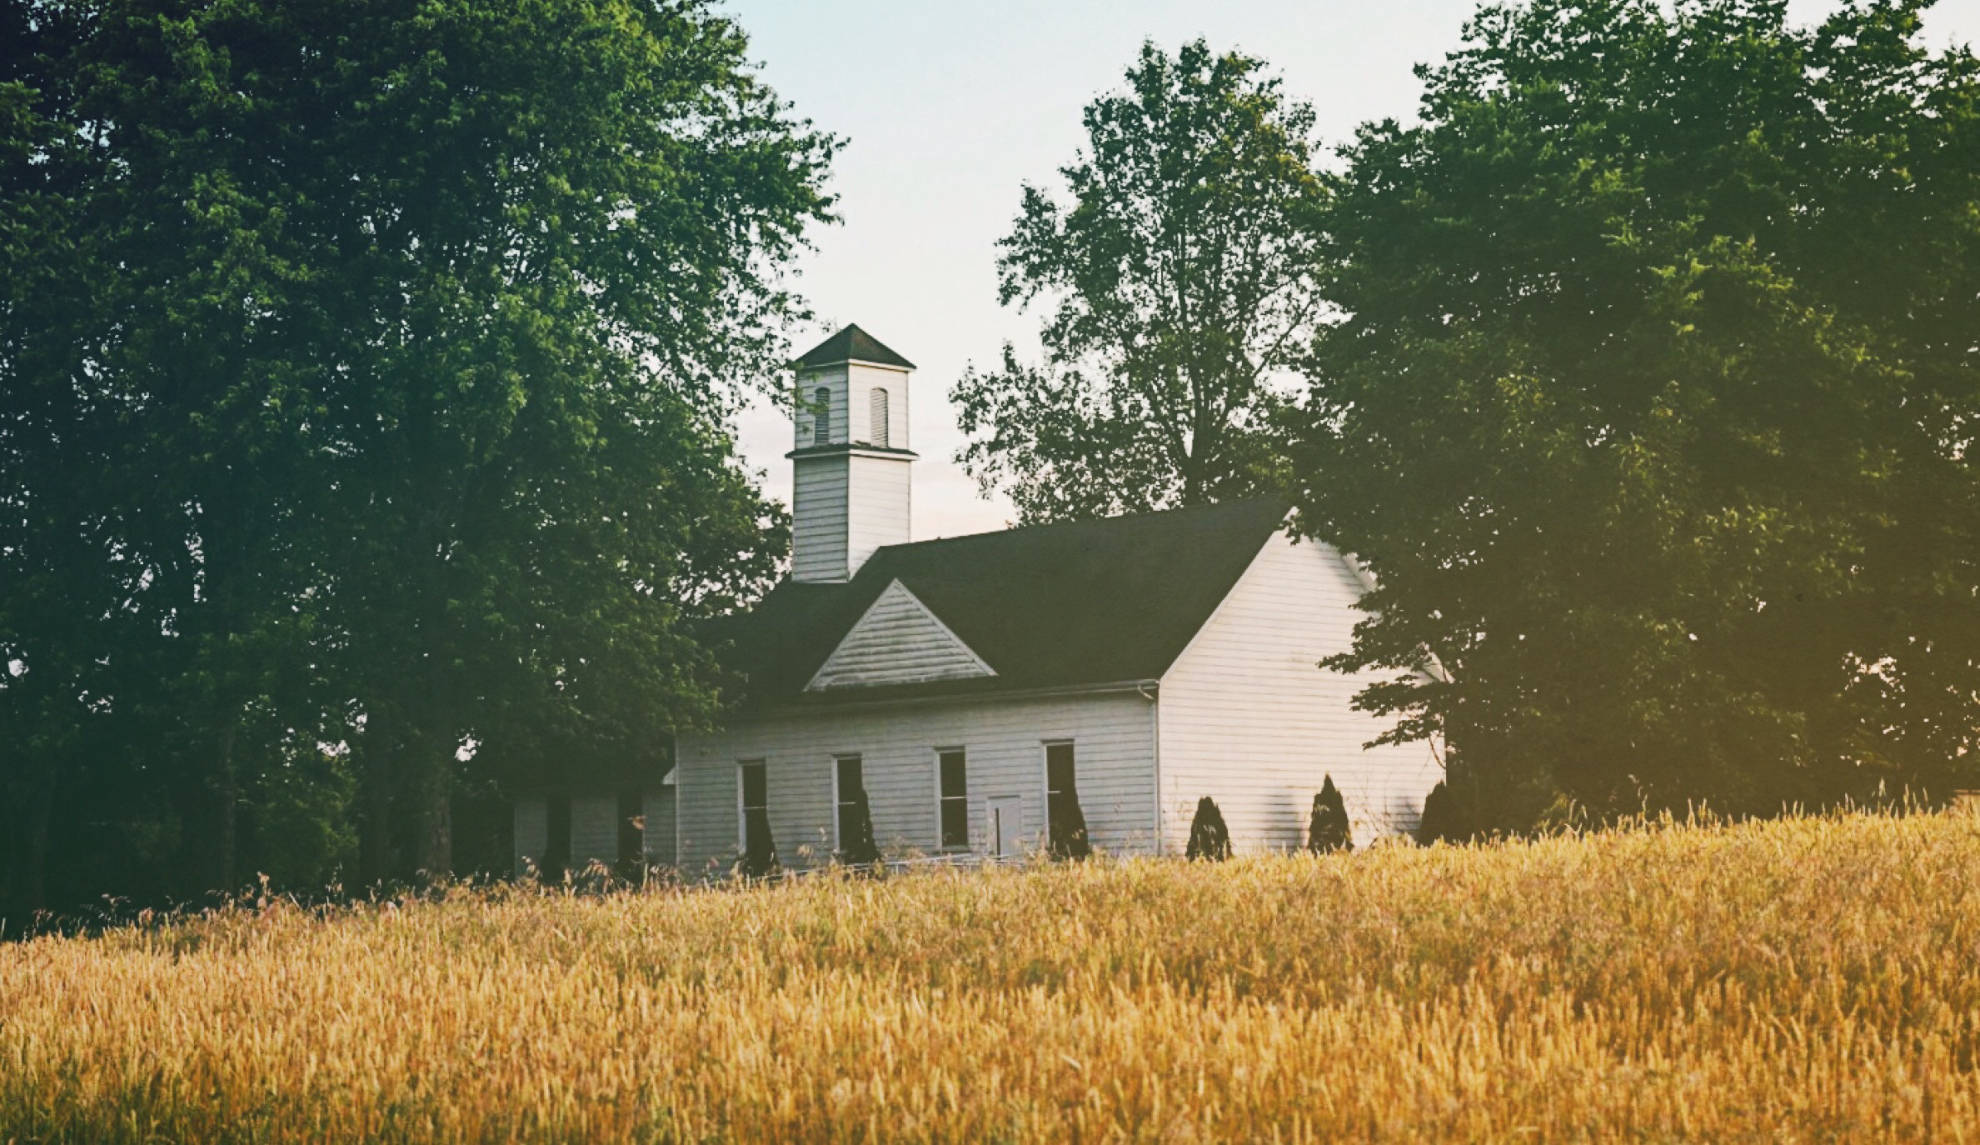 The Governance of the Church